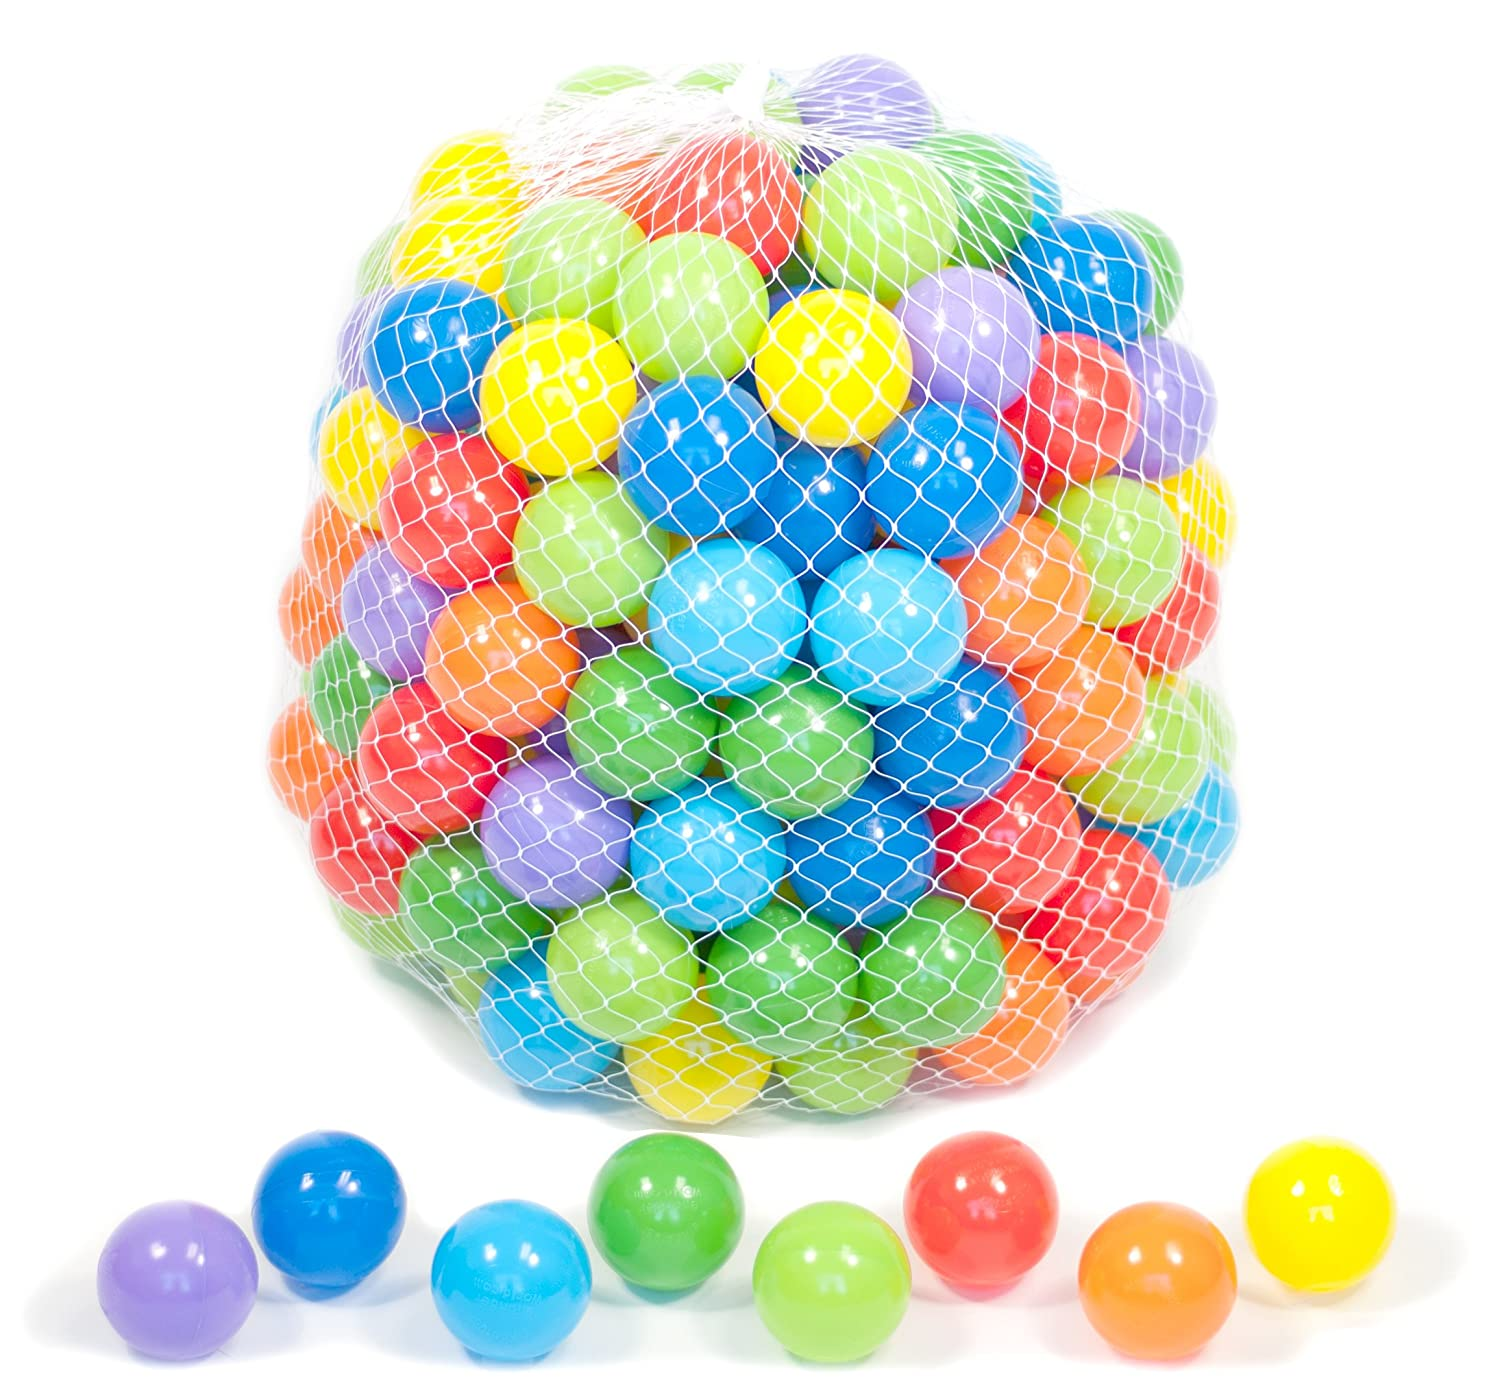 Orange Non-Toxic 200 Phthalate Free Crush Proof Non-Recycled Quality 6.0cm Pit Balls for Kids w//Net Tote Toss Zone /& Test Reports: 8 Colors Red Sky Blue and Purple eWonderWorld CT-3726 Lime Green Blue Yellow